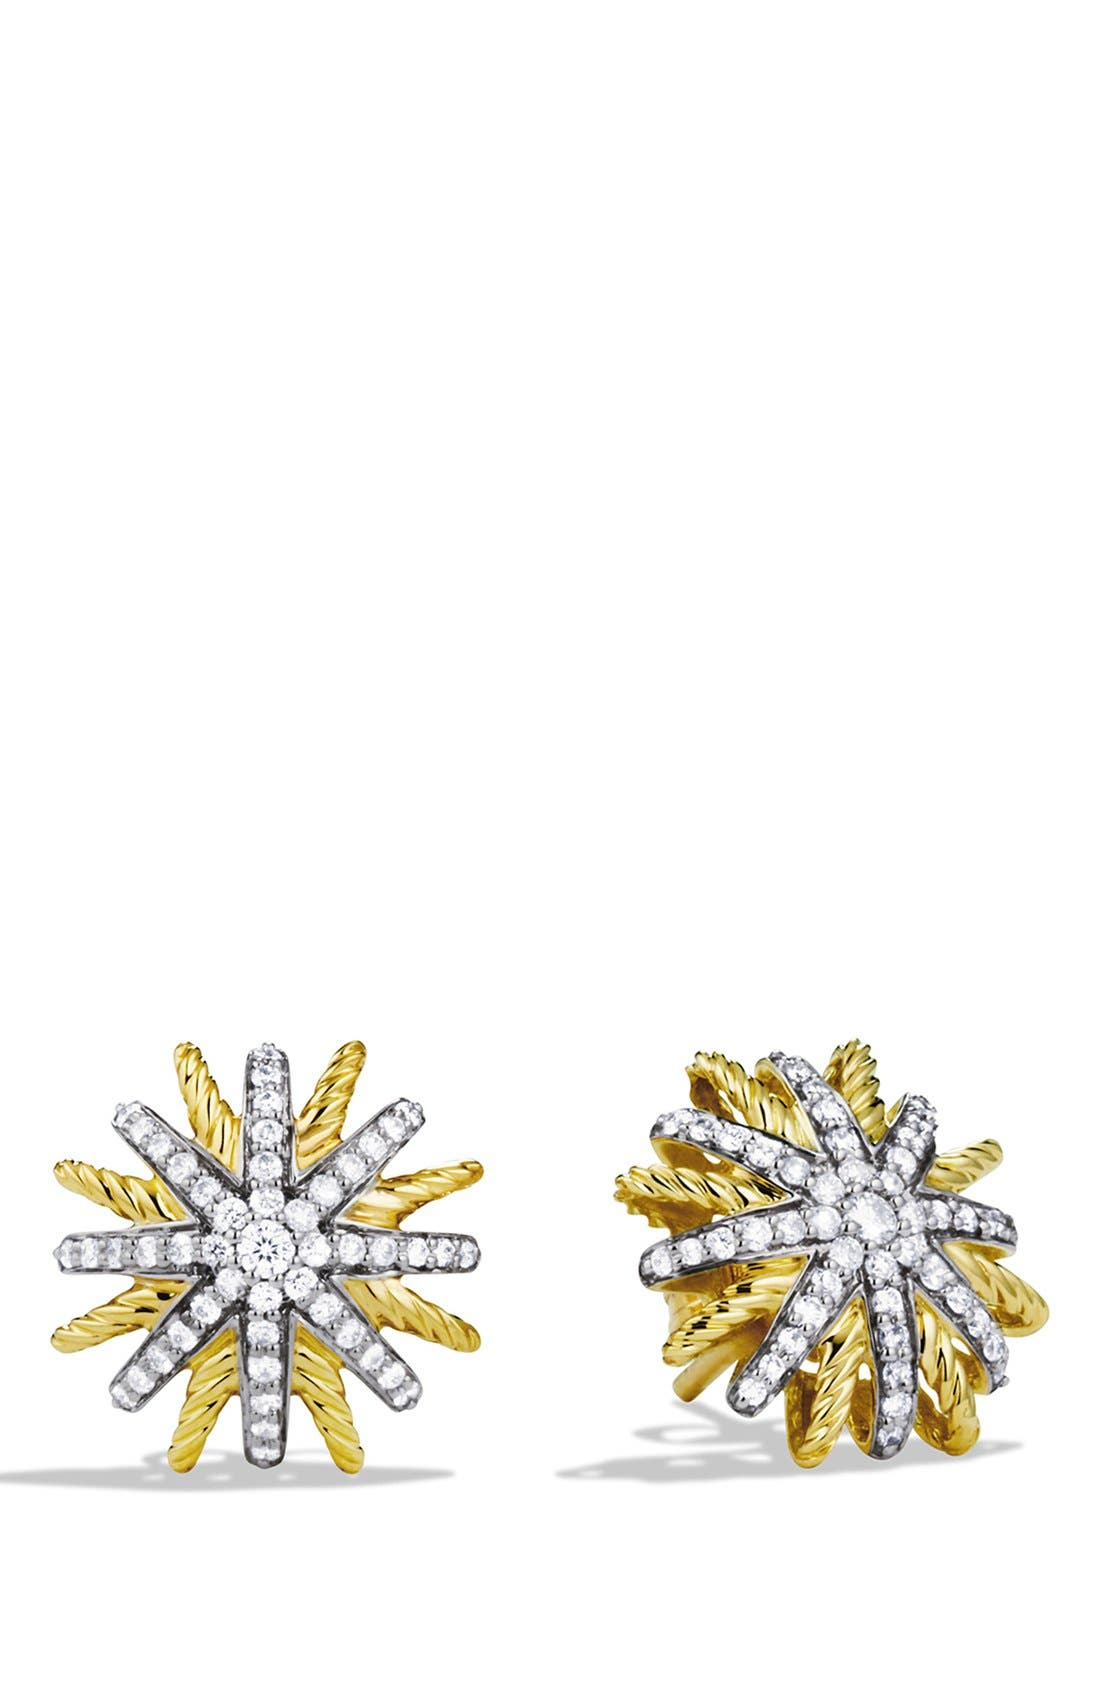 David Yurman 'Starburst' Extra-Small Earrings with Diamonds in Gold